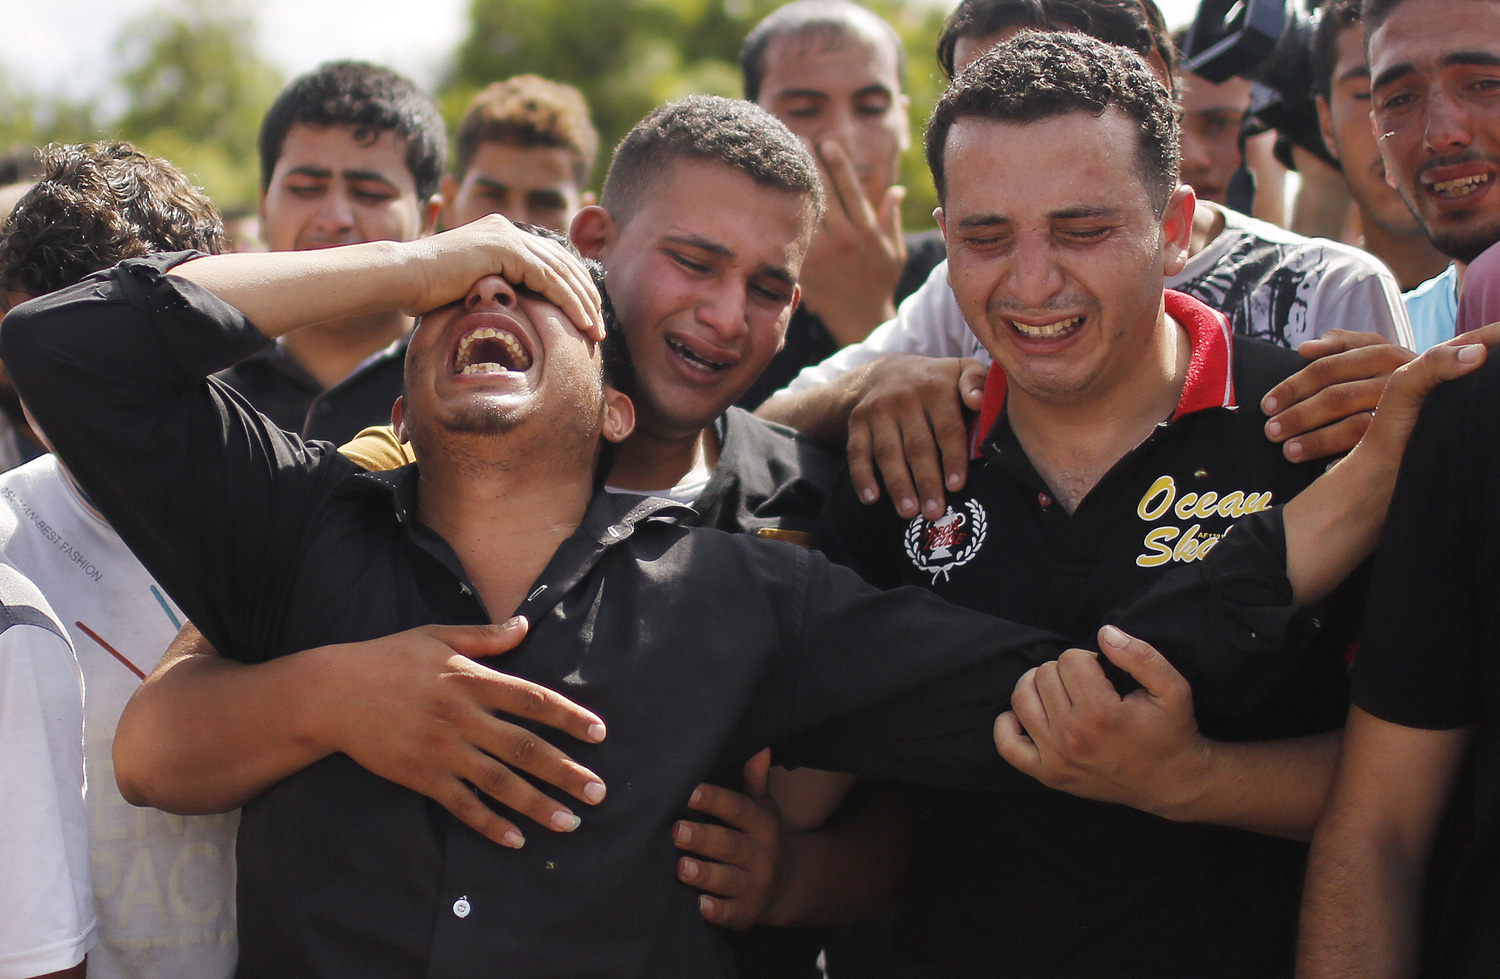 Eight-Members-of-One-Family-Killed-in-Their-Home-as-Israel's-Attack-on-Gaza-Continues